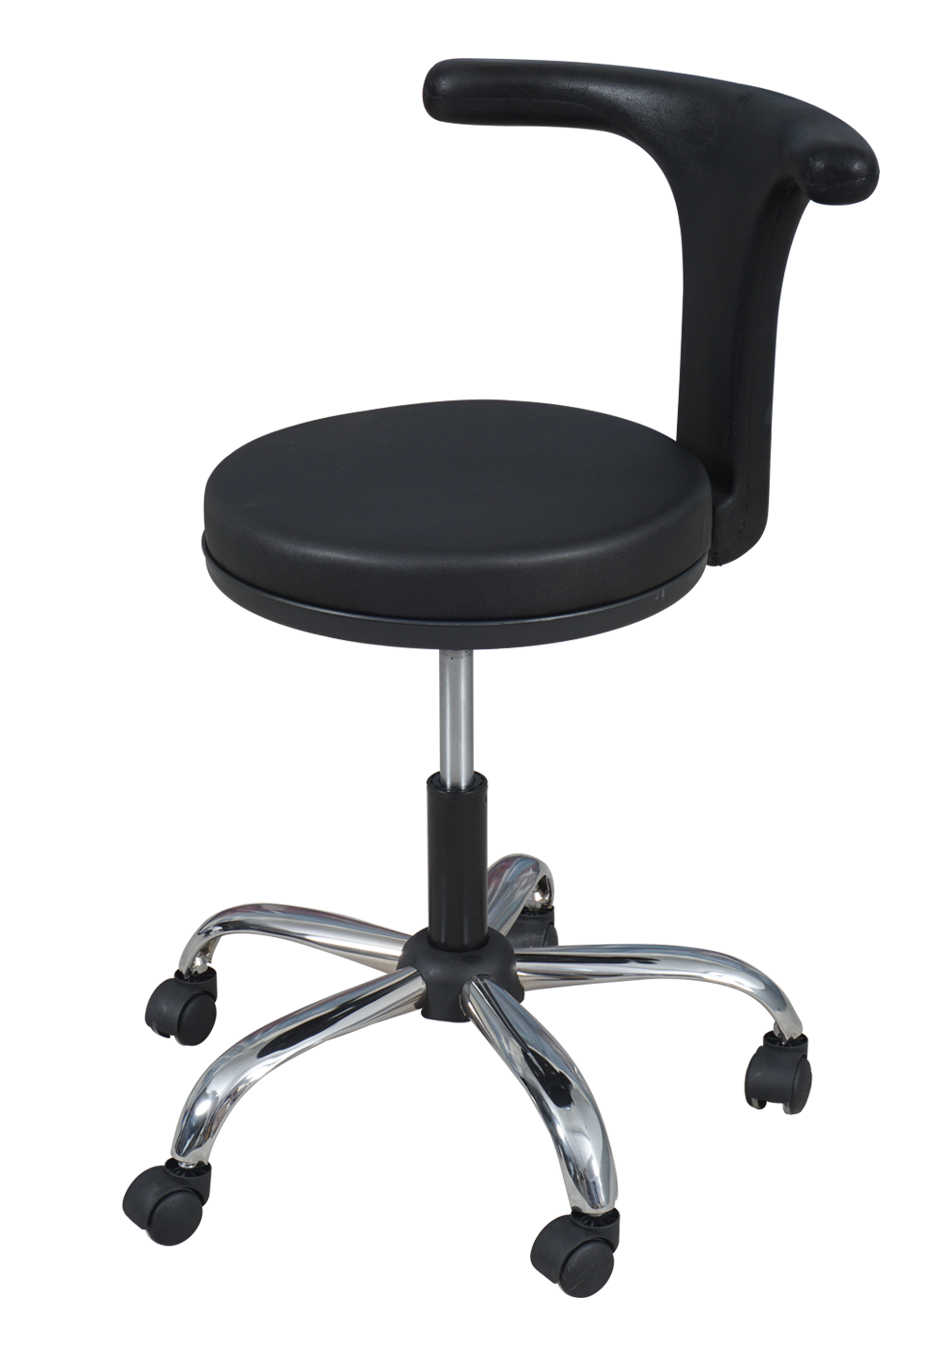 Medical Doctor Stool with T Shaped Backrest (Black)